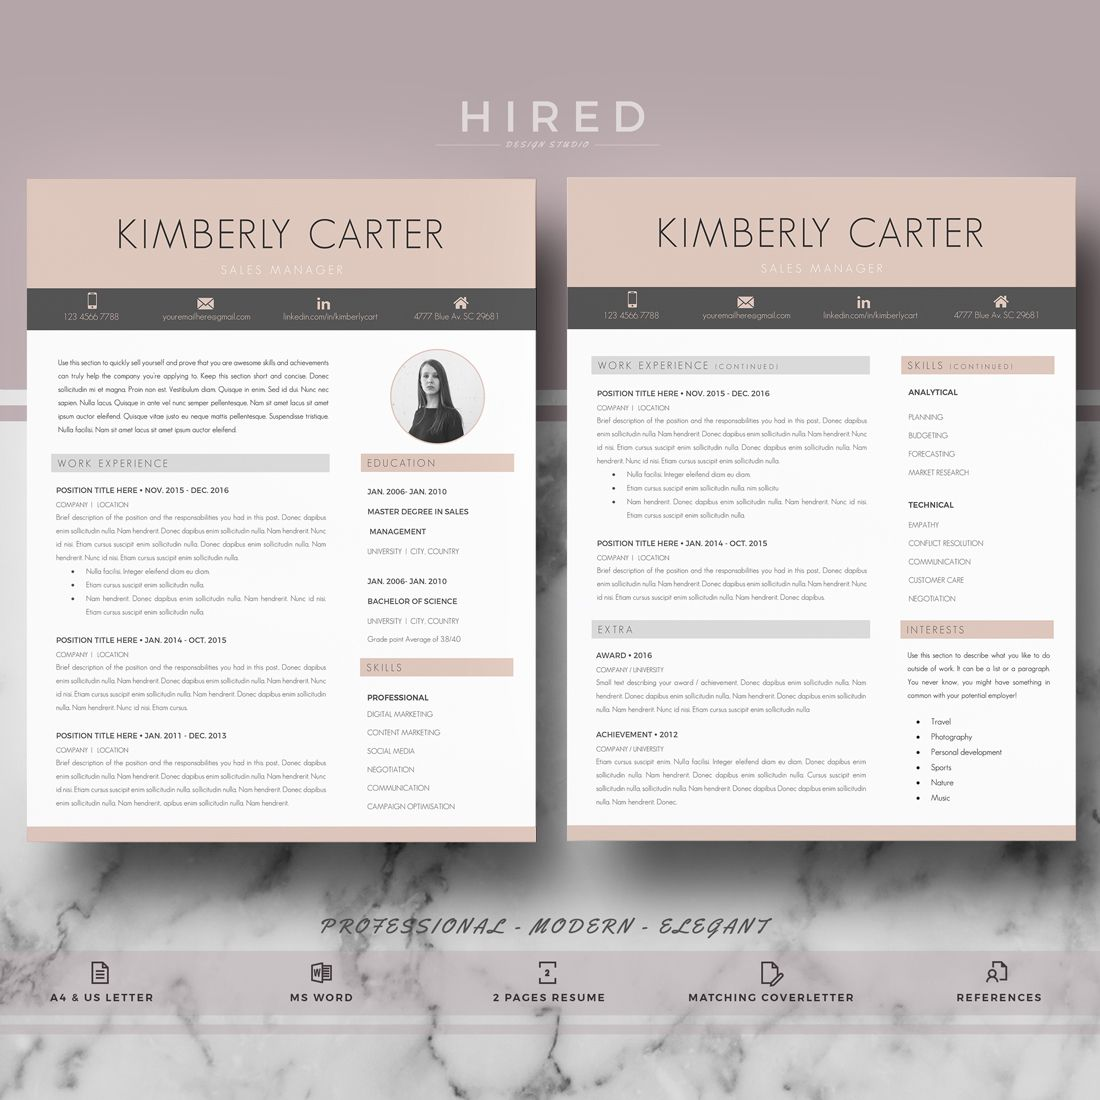 Resume template for Ms Word Modern resume template